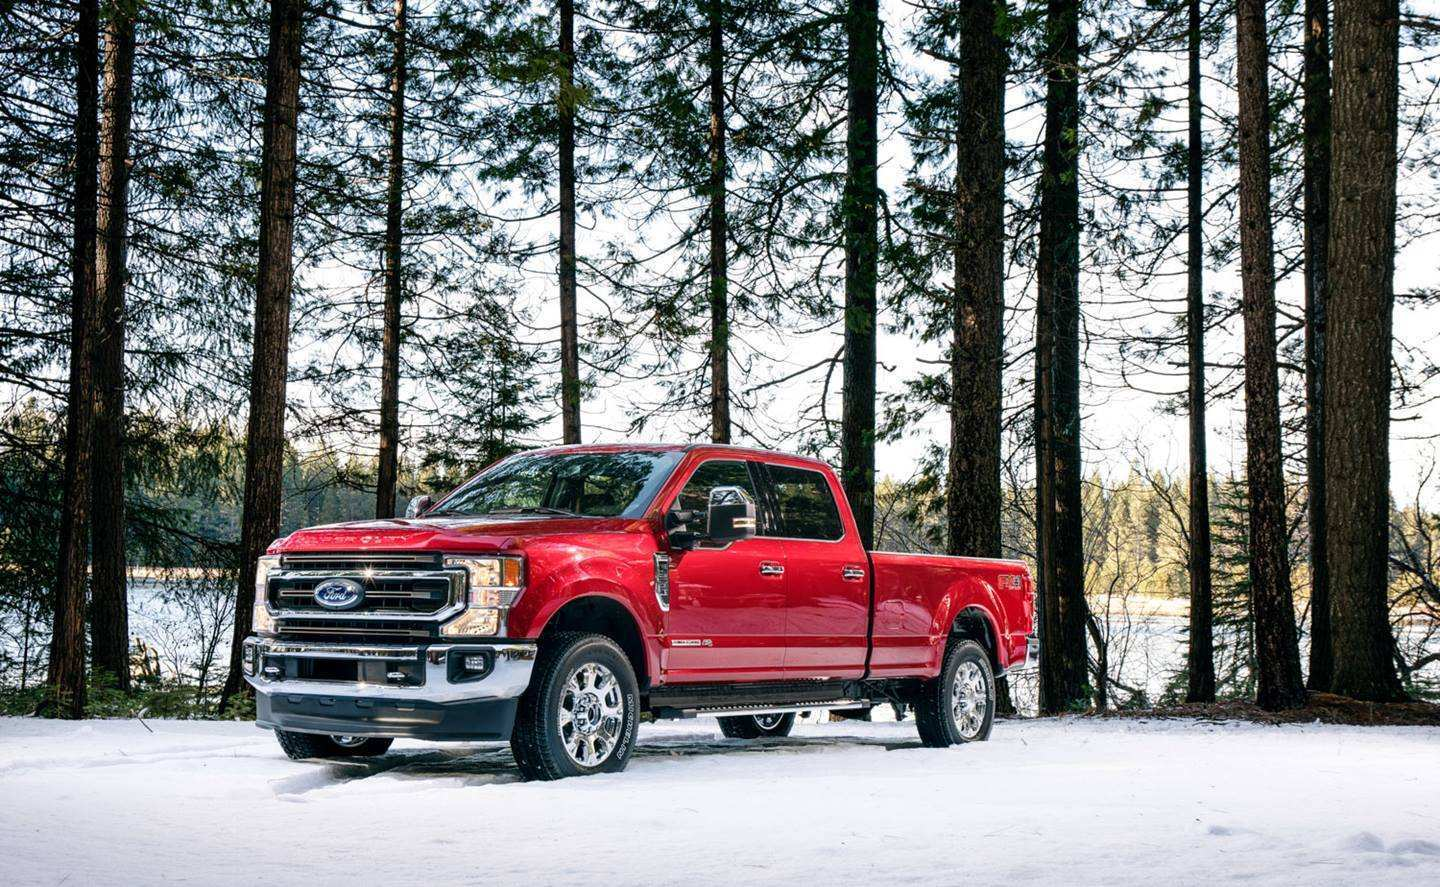 91 New 2020 Ford F450 Super Duty Pricing